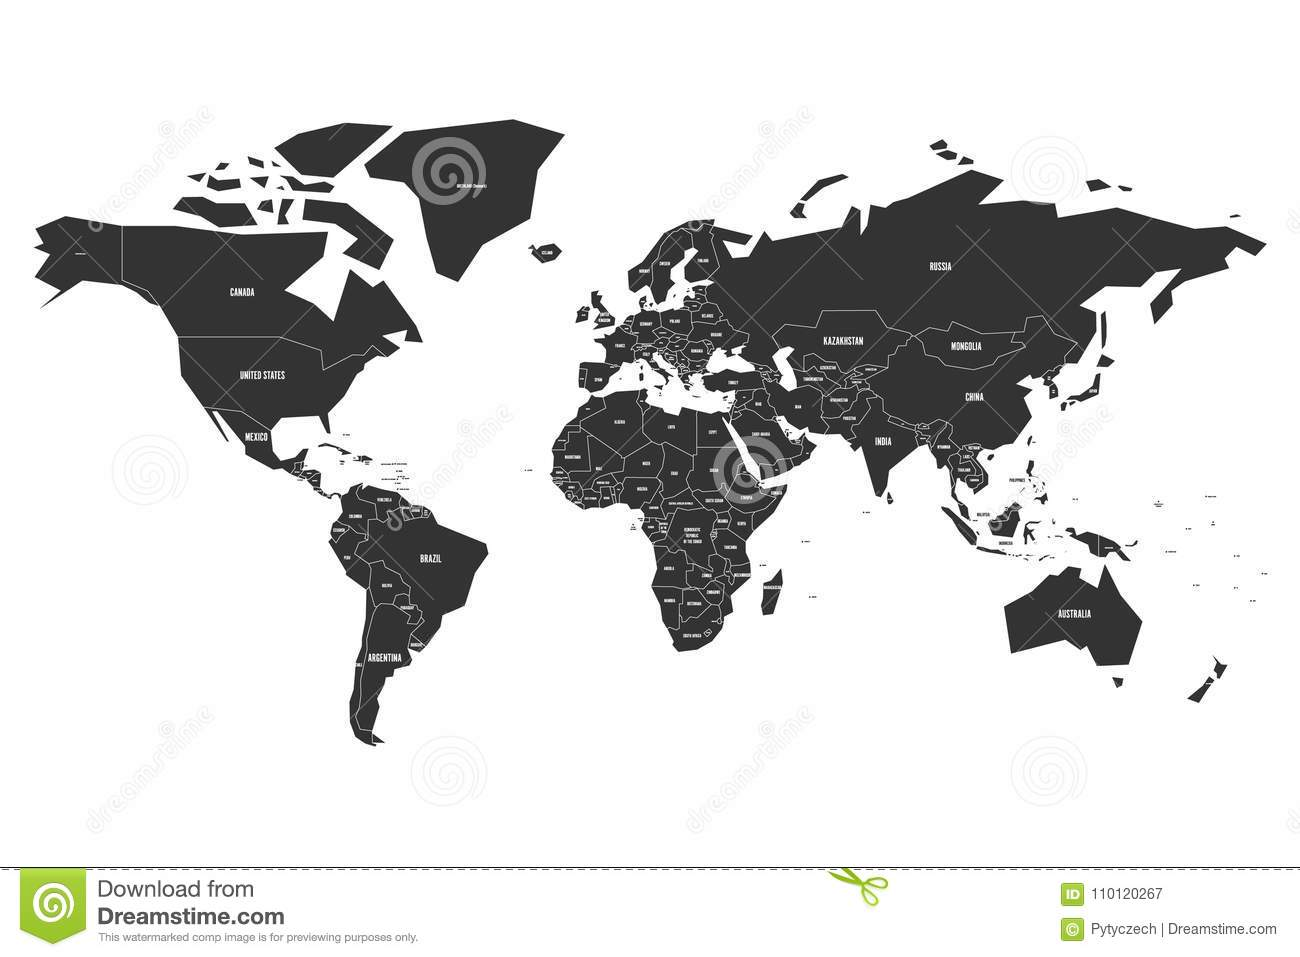 World Map To Color And Label.Vector Map Of World Stock Vector Illustration Of Elementary 110120267